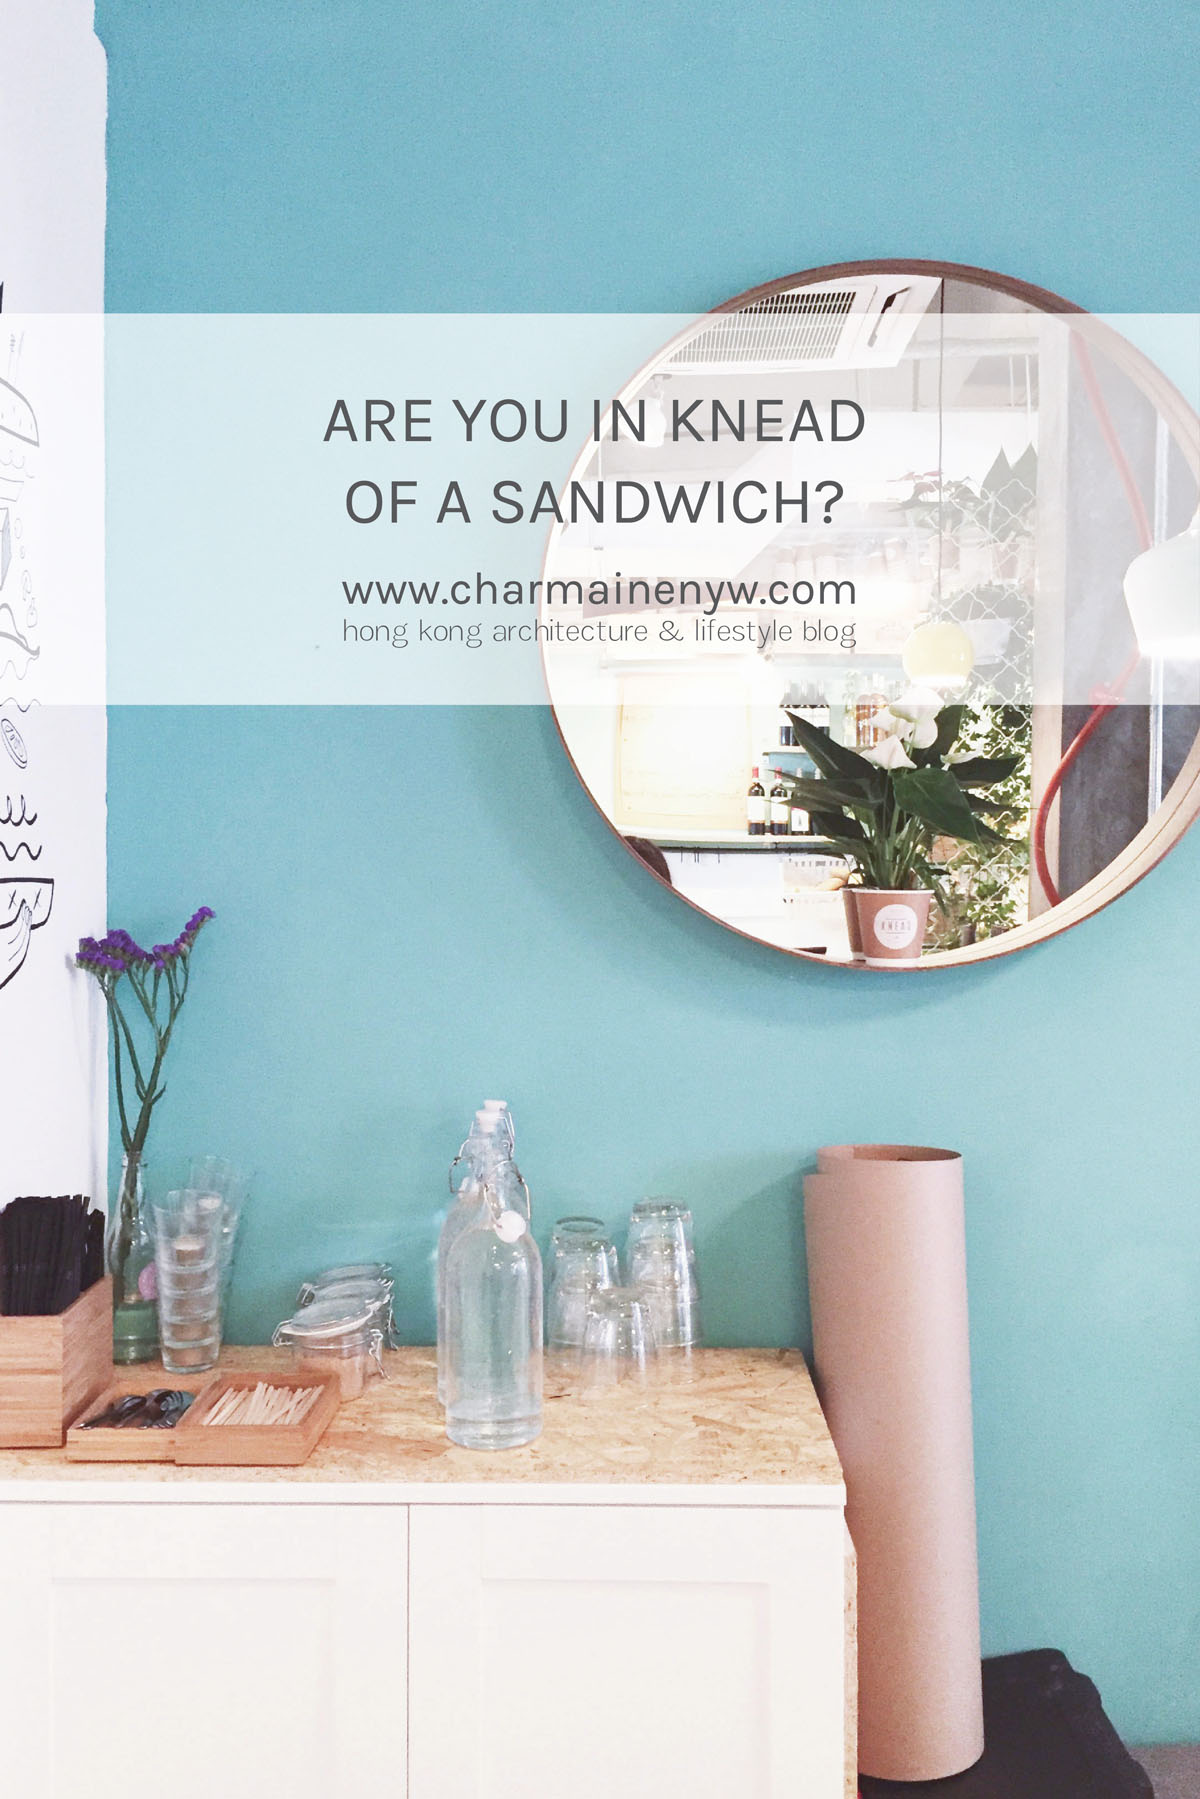 Are You in Knead of a Sandwich? | CHARMAINE NG